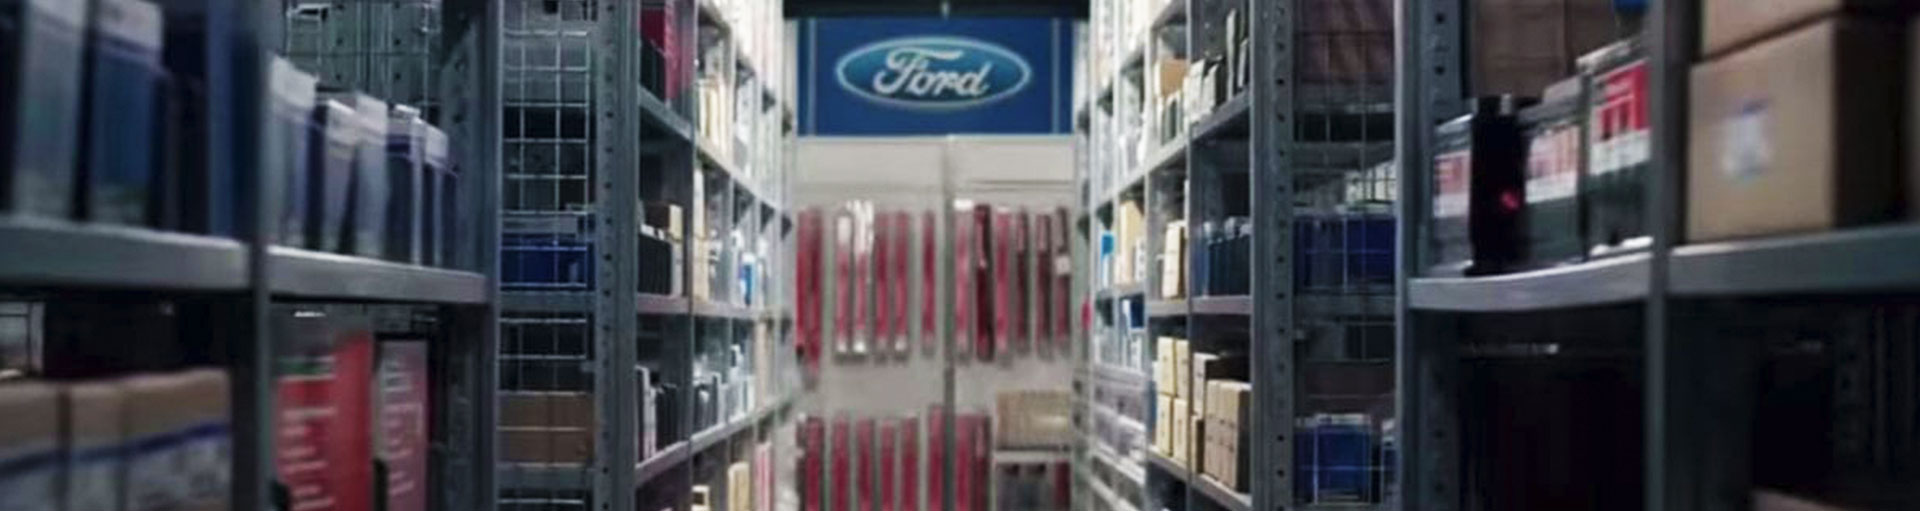 Chapman Ford Parts Department